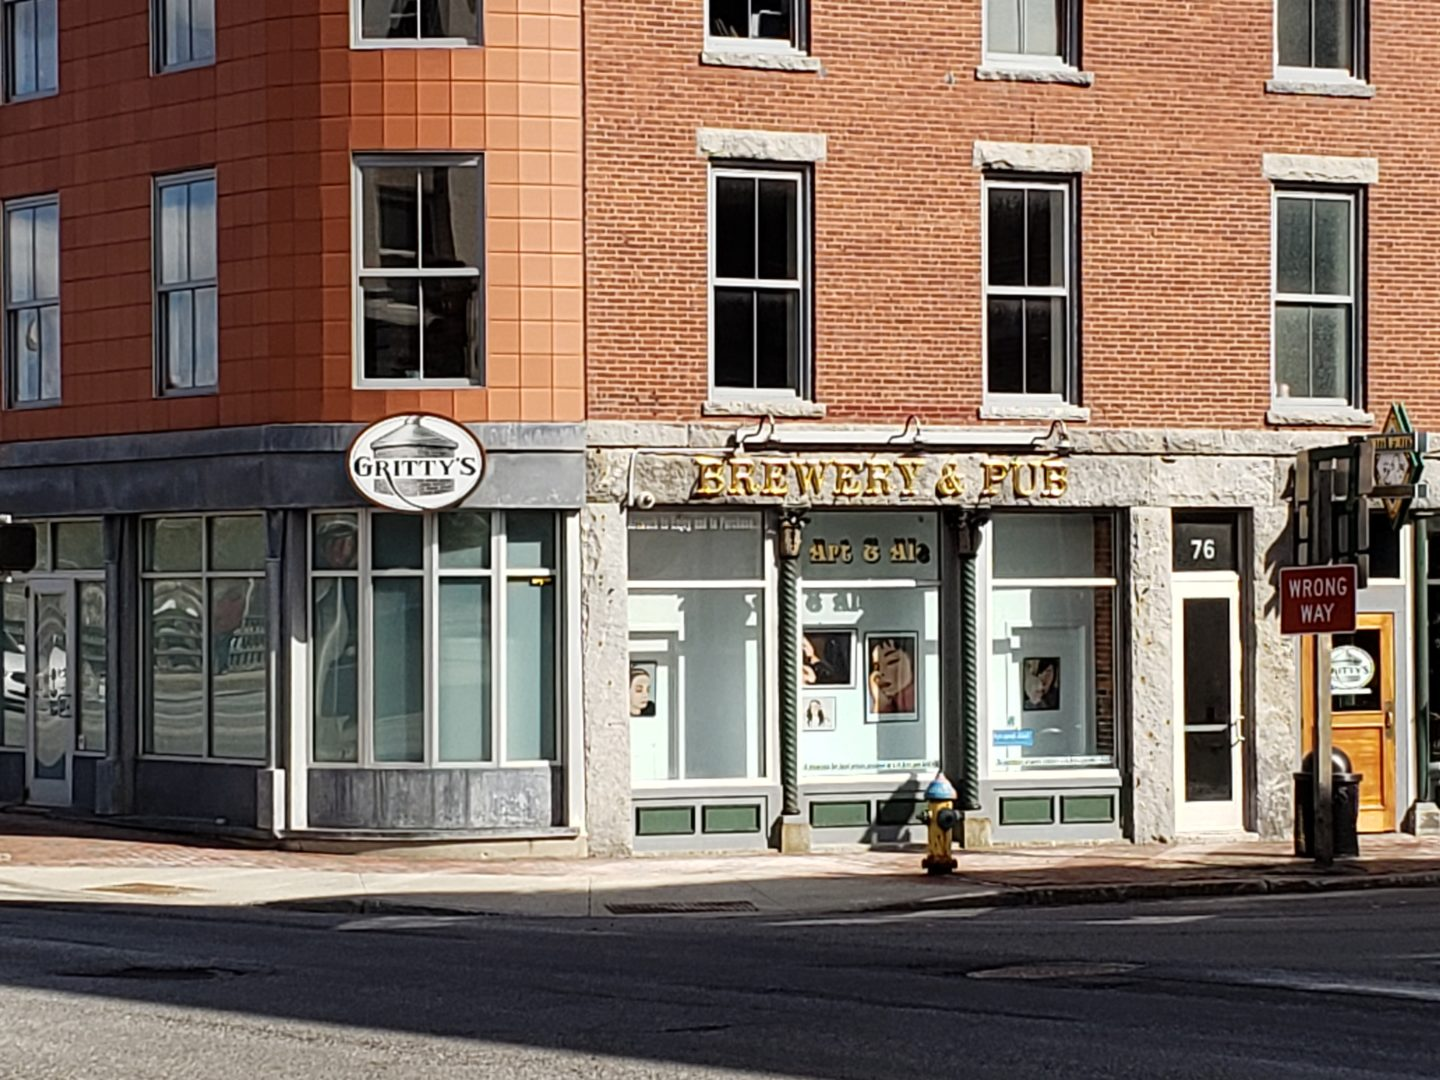 Grittys Brewery & Pub